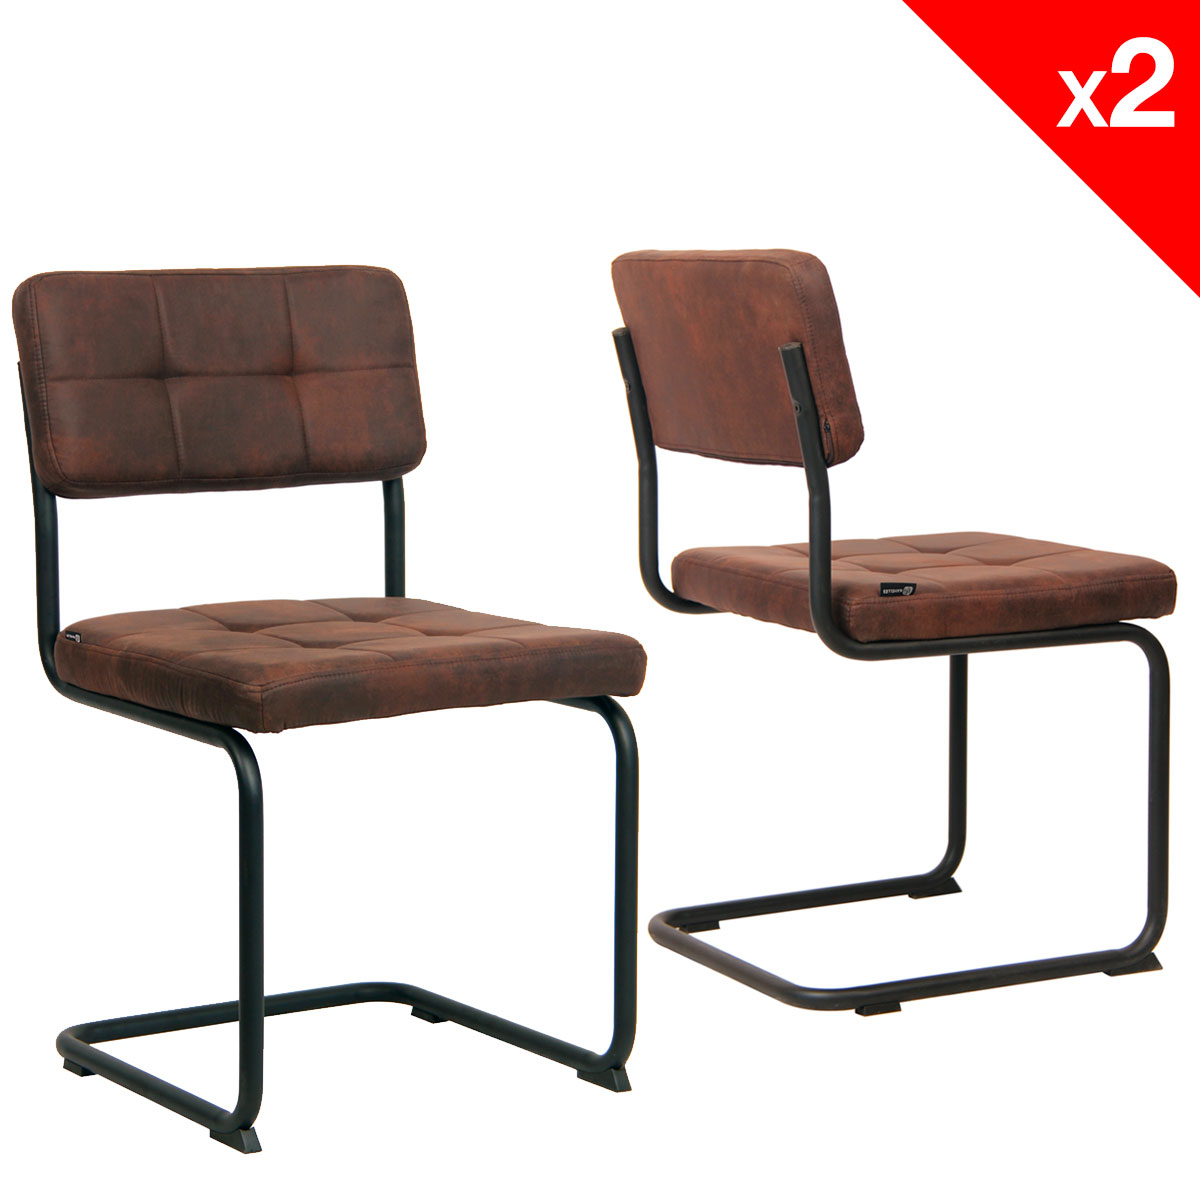 Chaise vintage matelass e lot de 2 safi for Chaise salle a manger retro